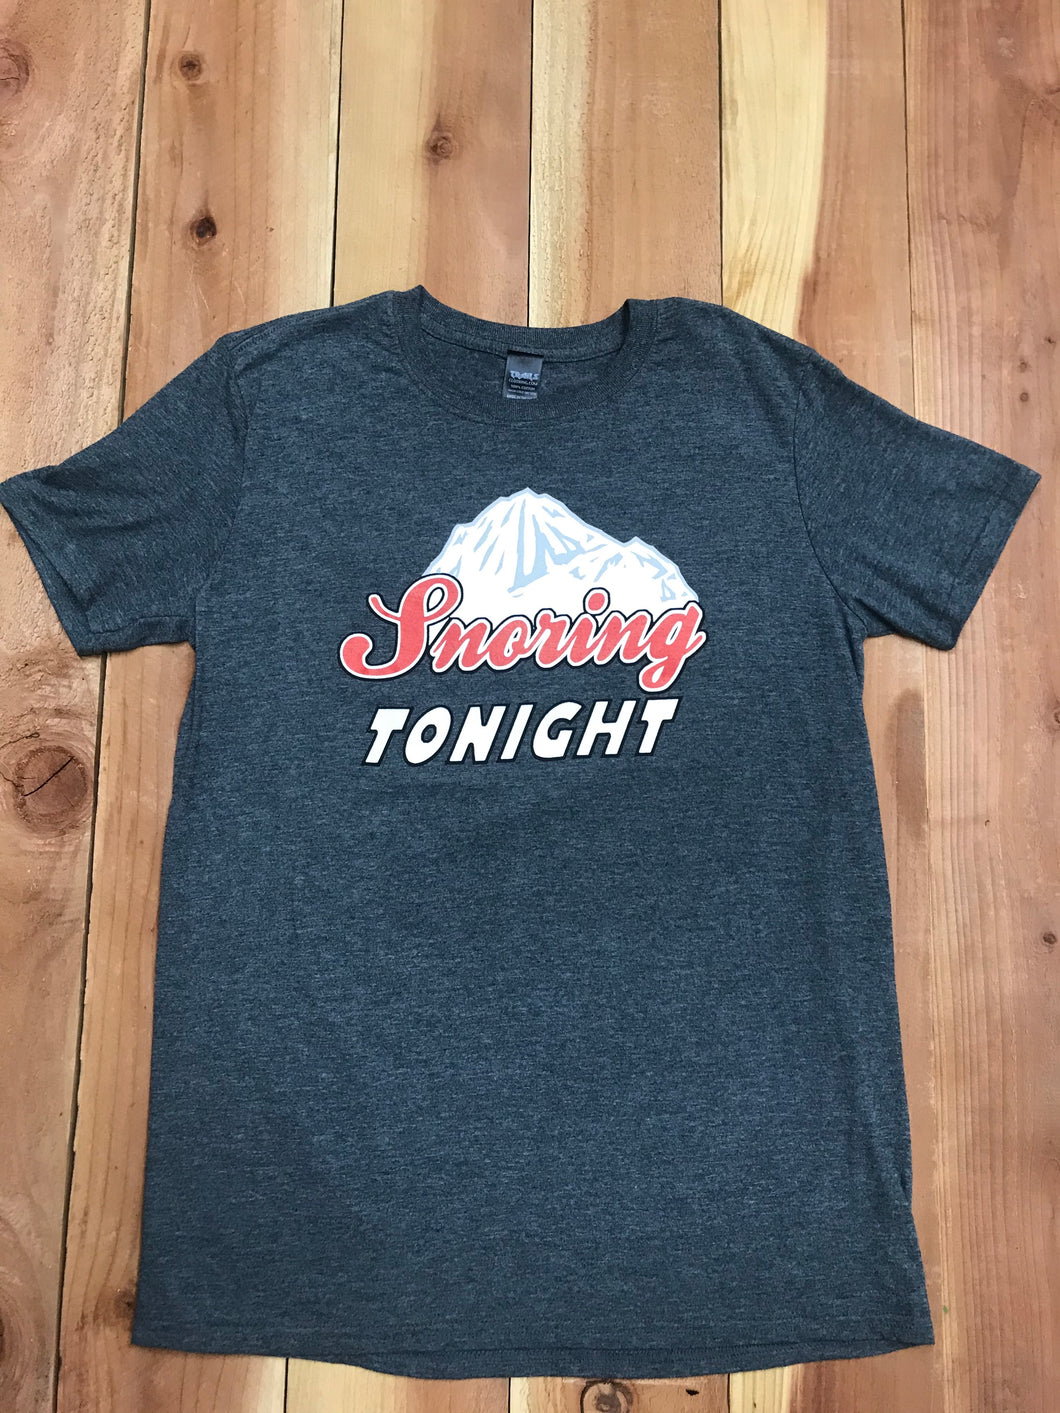 SNORING TONIGHT MENS TEE - Trailsclothing.com